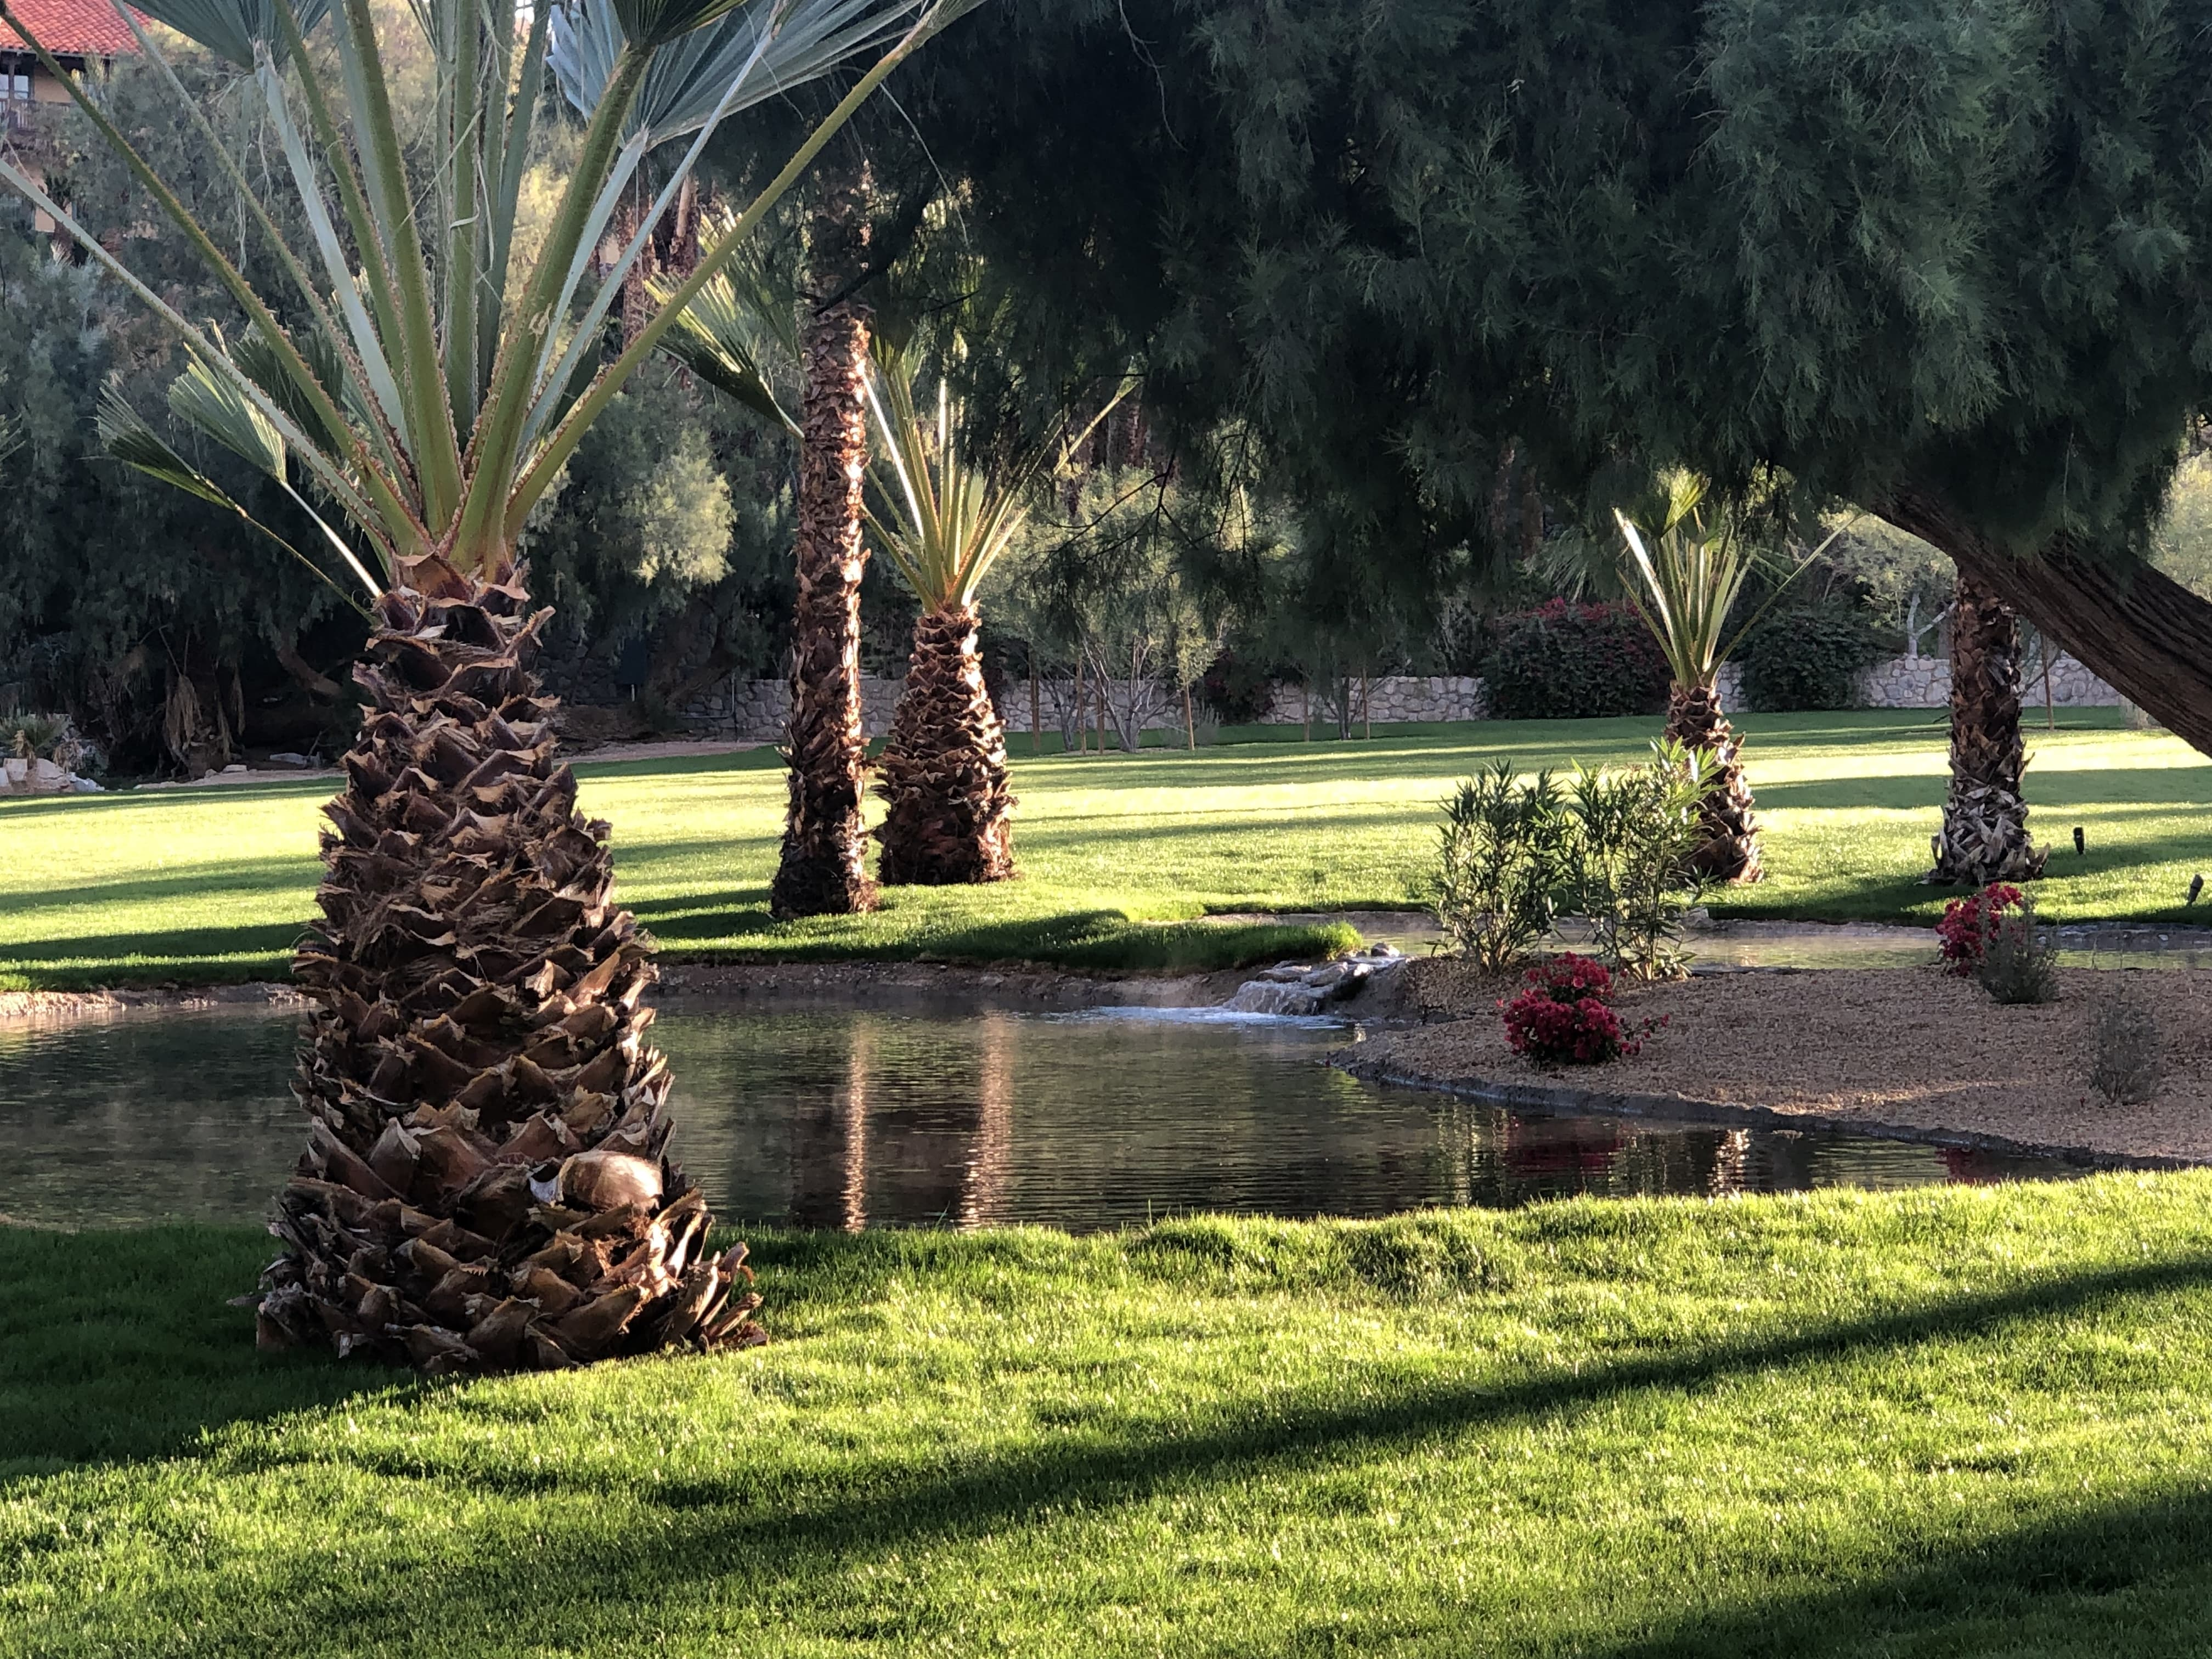 Amazingly, there was a pond surrounded with palm trees at our Casitas's backyard.